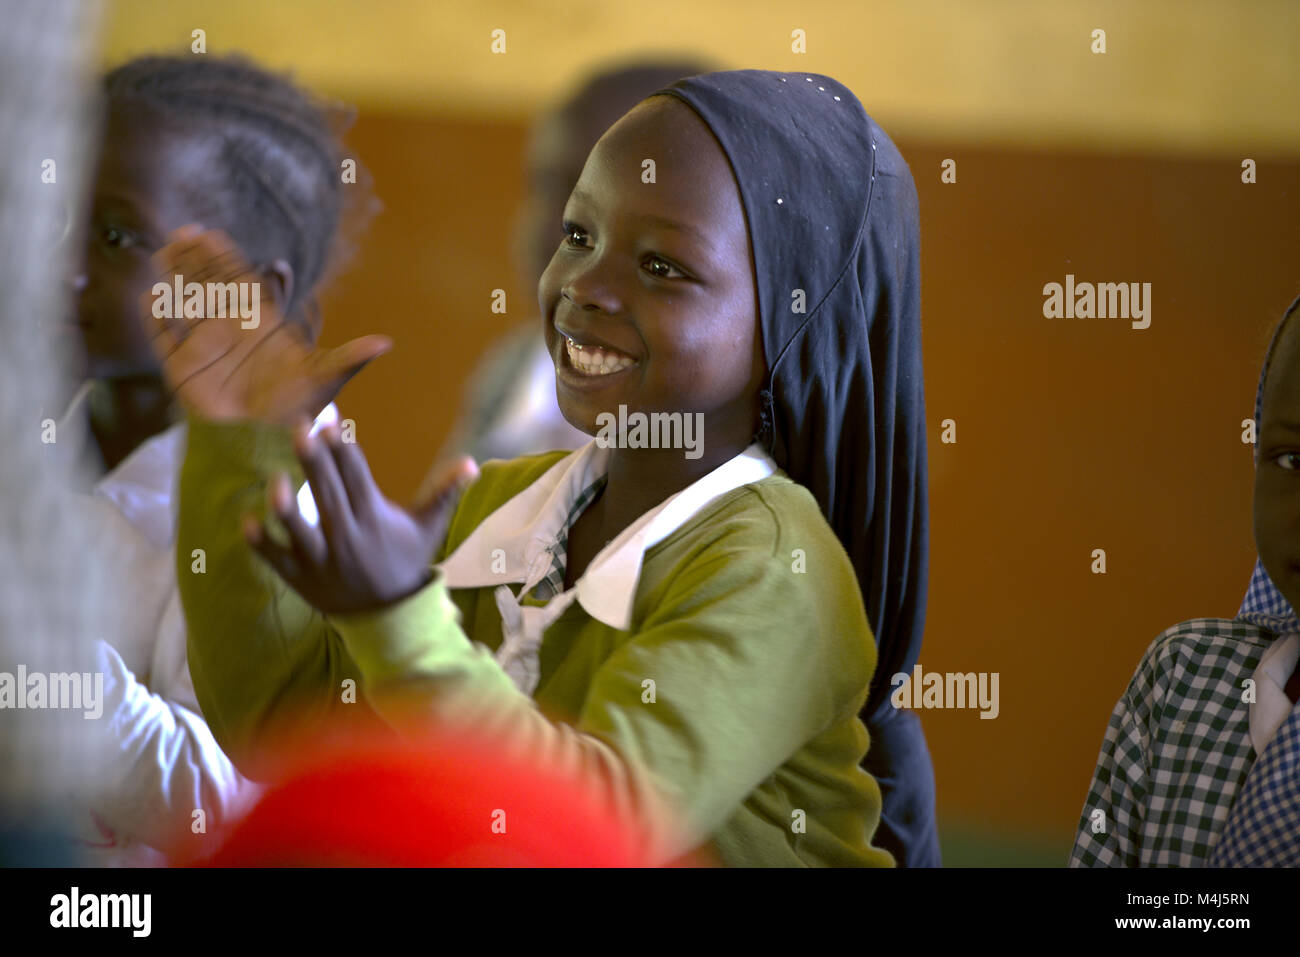 An indigenous Mandinka school girl claps as she sings a song in her village school in The Gambia, West Africa. - Stock Image